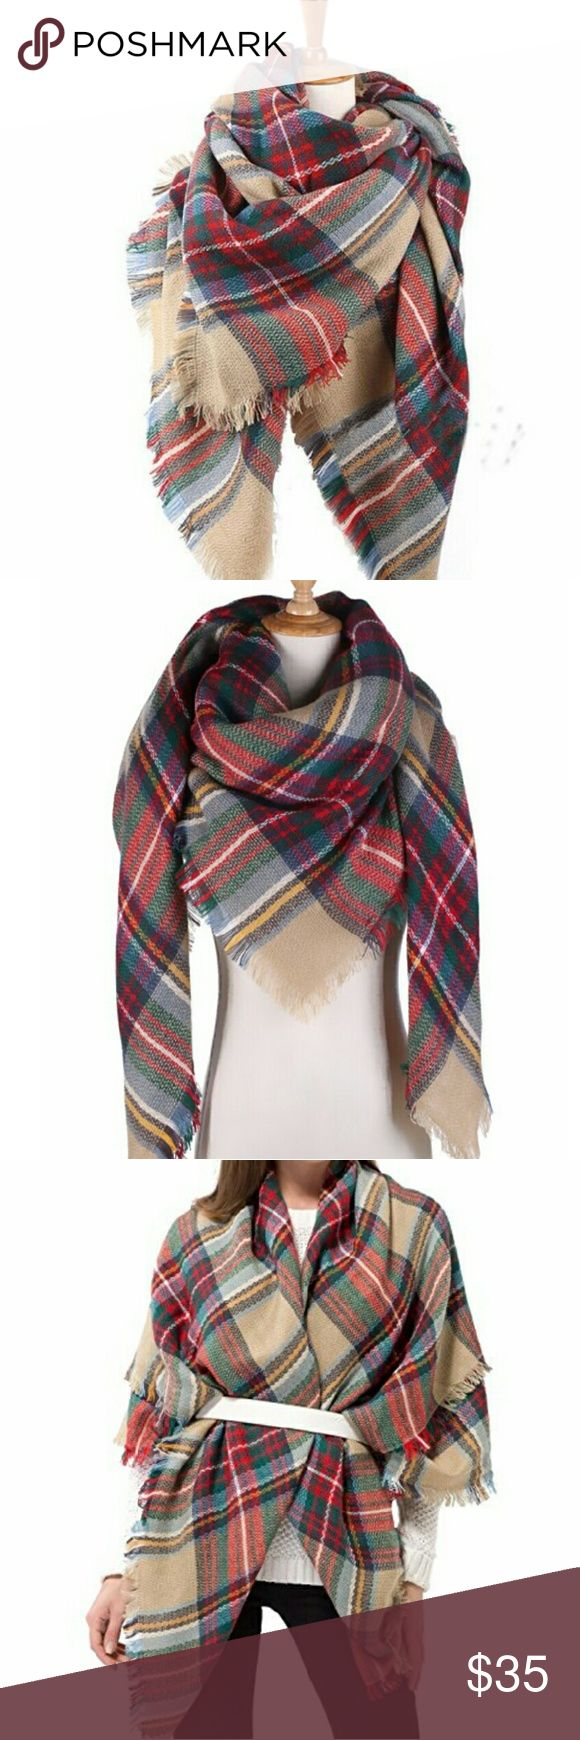 """THREE LEFT 5☆ oversized plaid tartan blanket scarf Gorgoeus warm scarf perfect for fall and winter. 100% acrylic fibers so super warm and so so soft, not at all scratchy like wool. Measures 55"""" x 55"""". Ask about bundles! Have sold over 15 of these and they were all 5-star rated by buyers! Feel free to make an offer! Priced to negotiate! C.C. Boutique  Accessories Scarves & Wraps"""